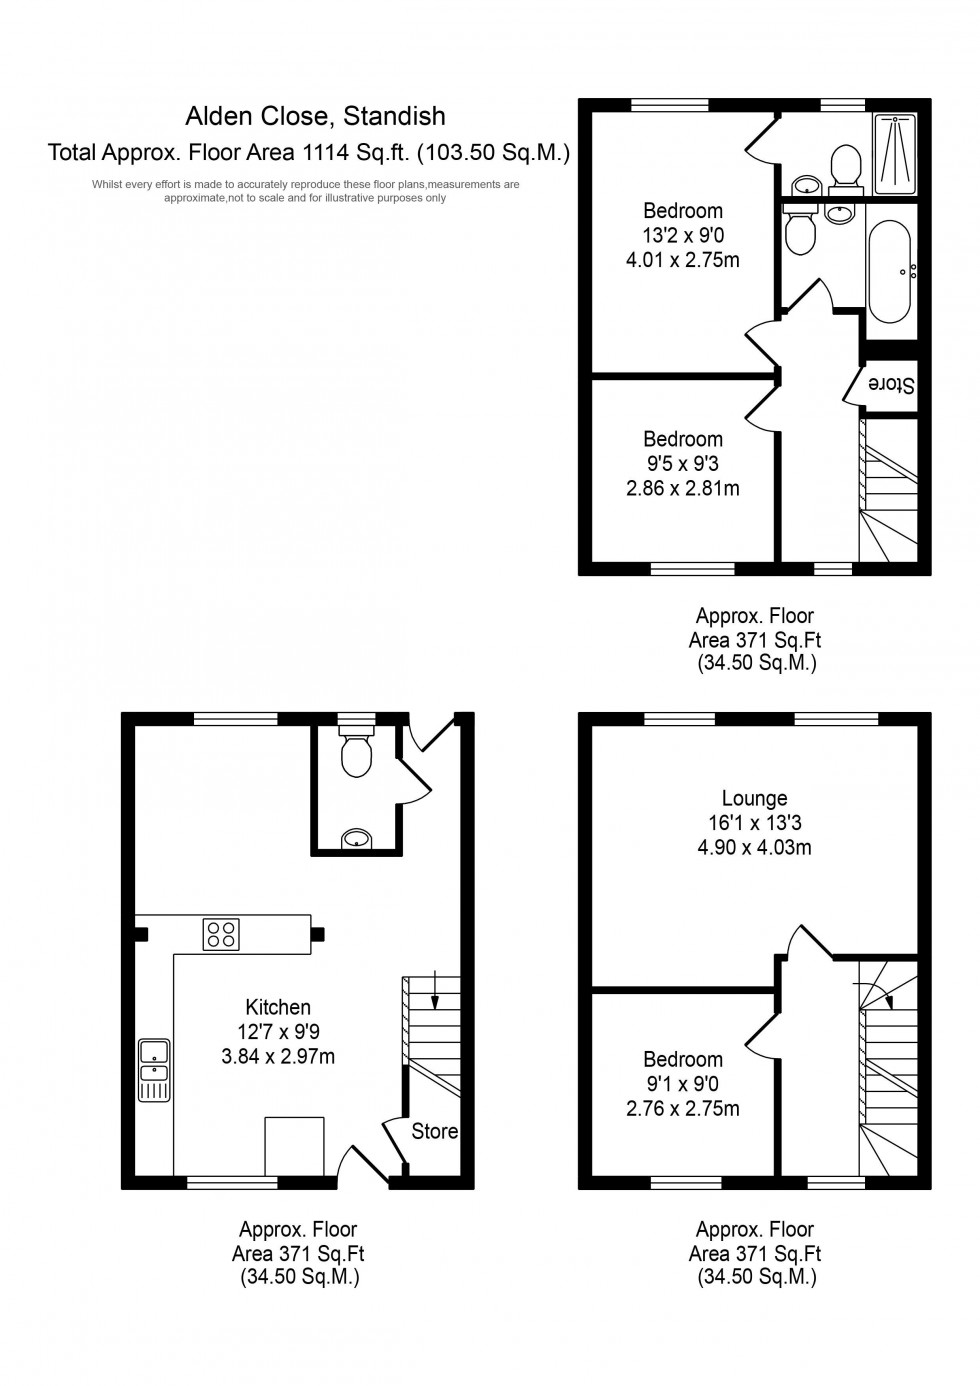 Floorplan for Alden Close, Standish